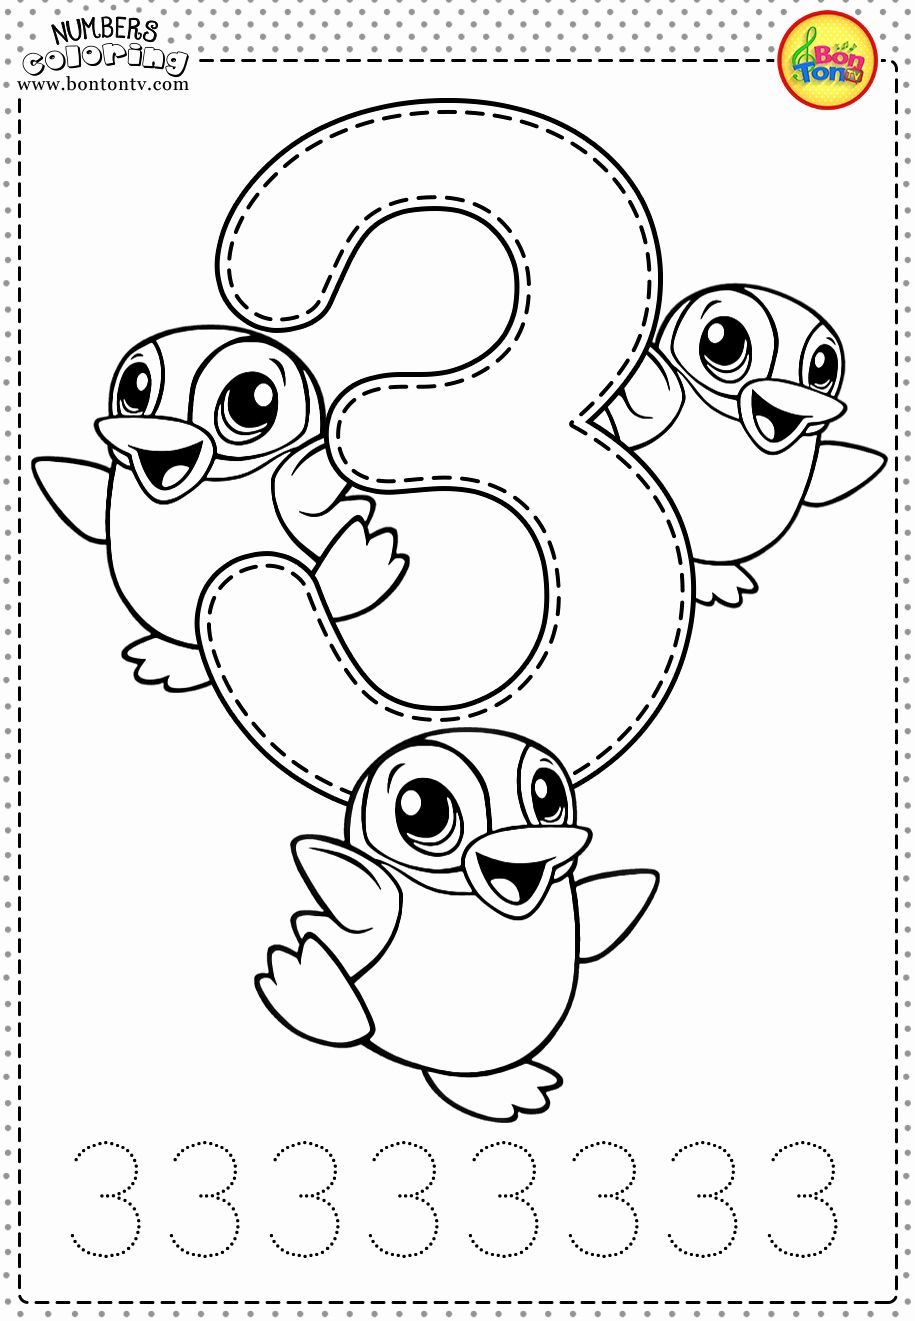 coloring worksheets for kindergarten pdf kindergarten coloring coloring sheets for kids pdf best pdf coloring kindergarten worksheets for